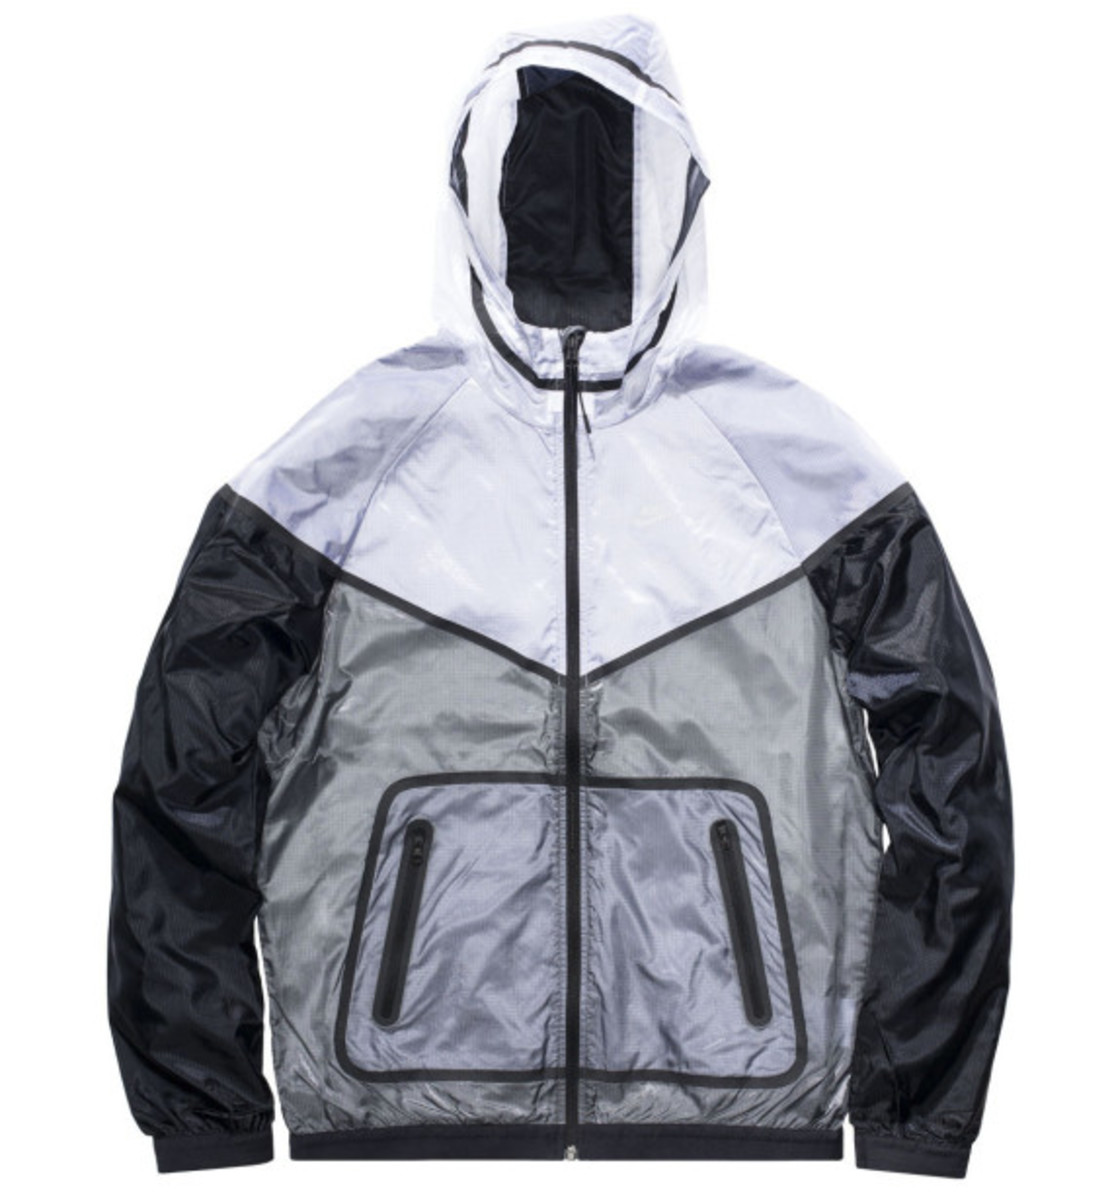 fragment design x Nike Lab Fragment Tech Windrunner Jacket - 3